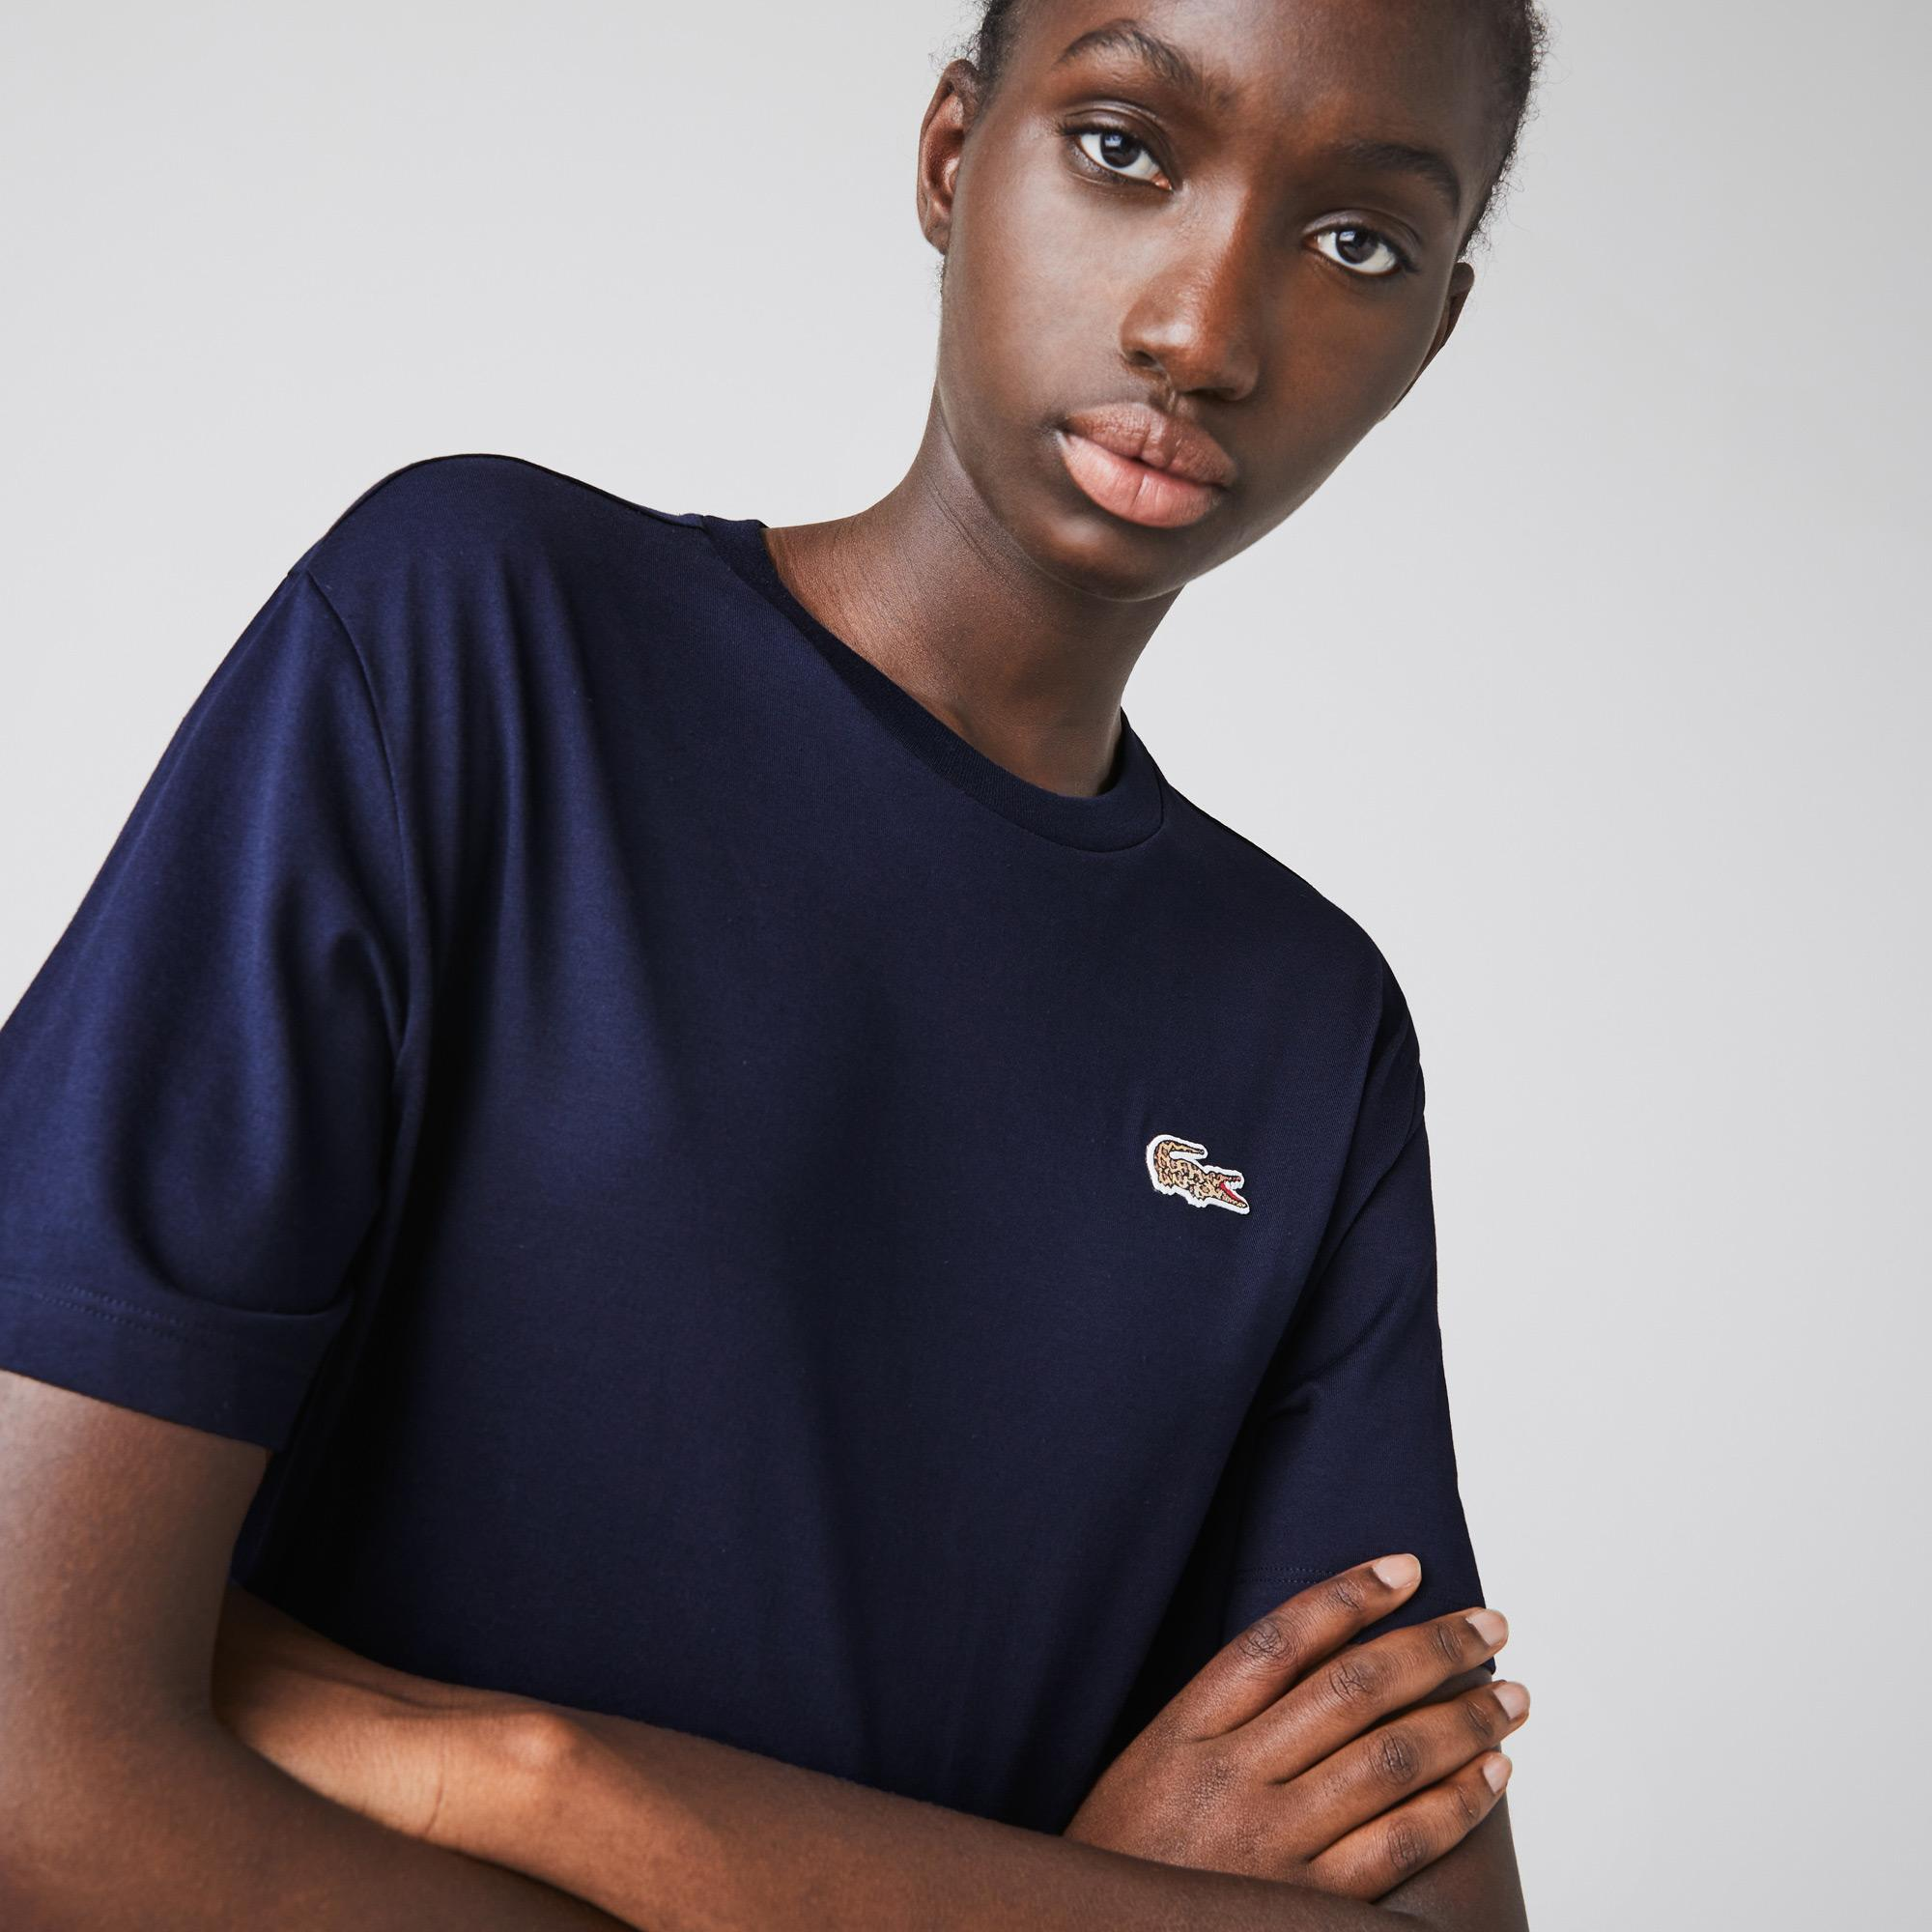 Lacoste футболка жіноча x National Geographic